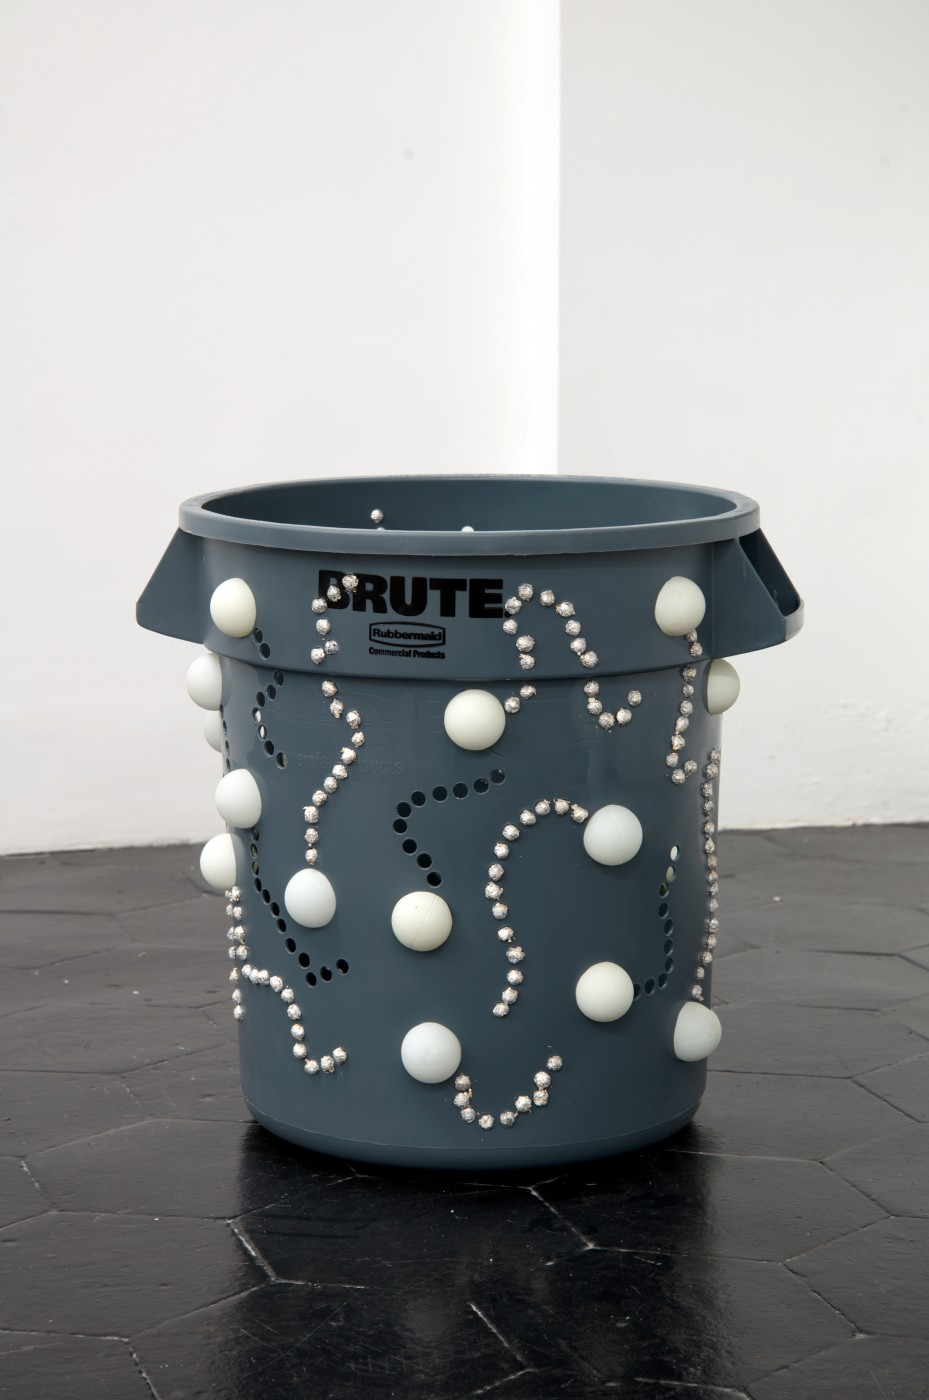 APPLE OF EARTH Nancy Lupo,  Stars, Stiga, Skybounce, Sperm</I>, 2014  